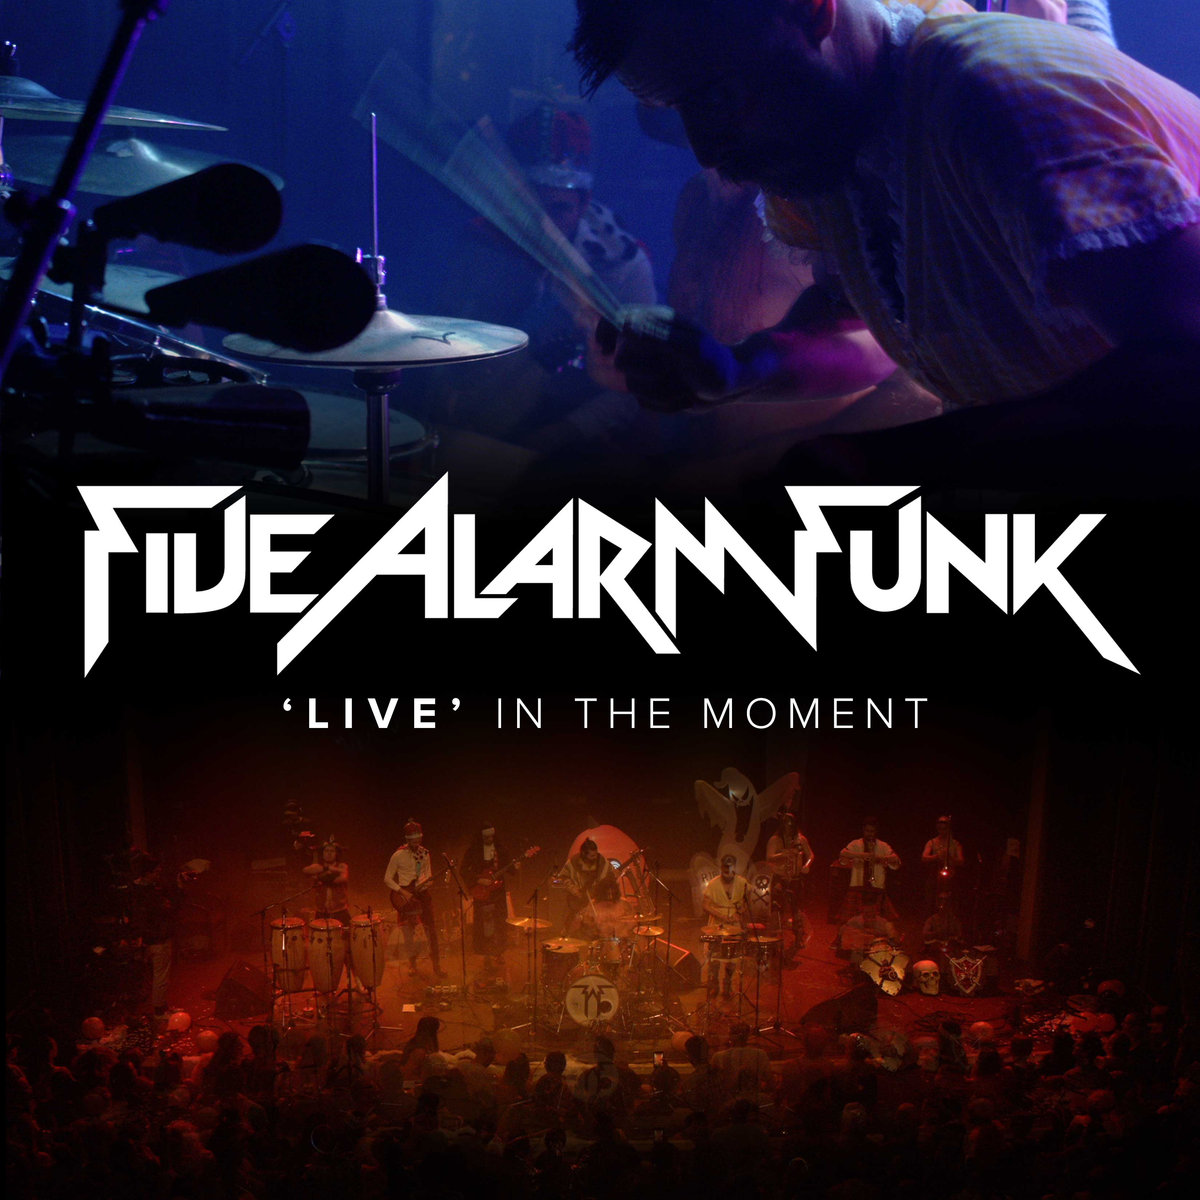 Five Alarm Funk -Live in the Moment  Release date:  Dec 14, 2018  Credit:  Mixer